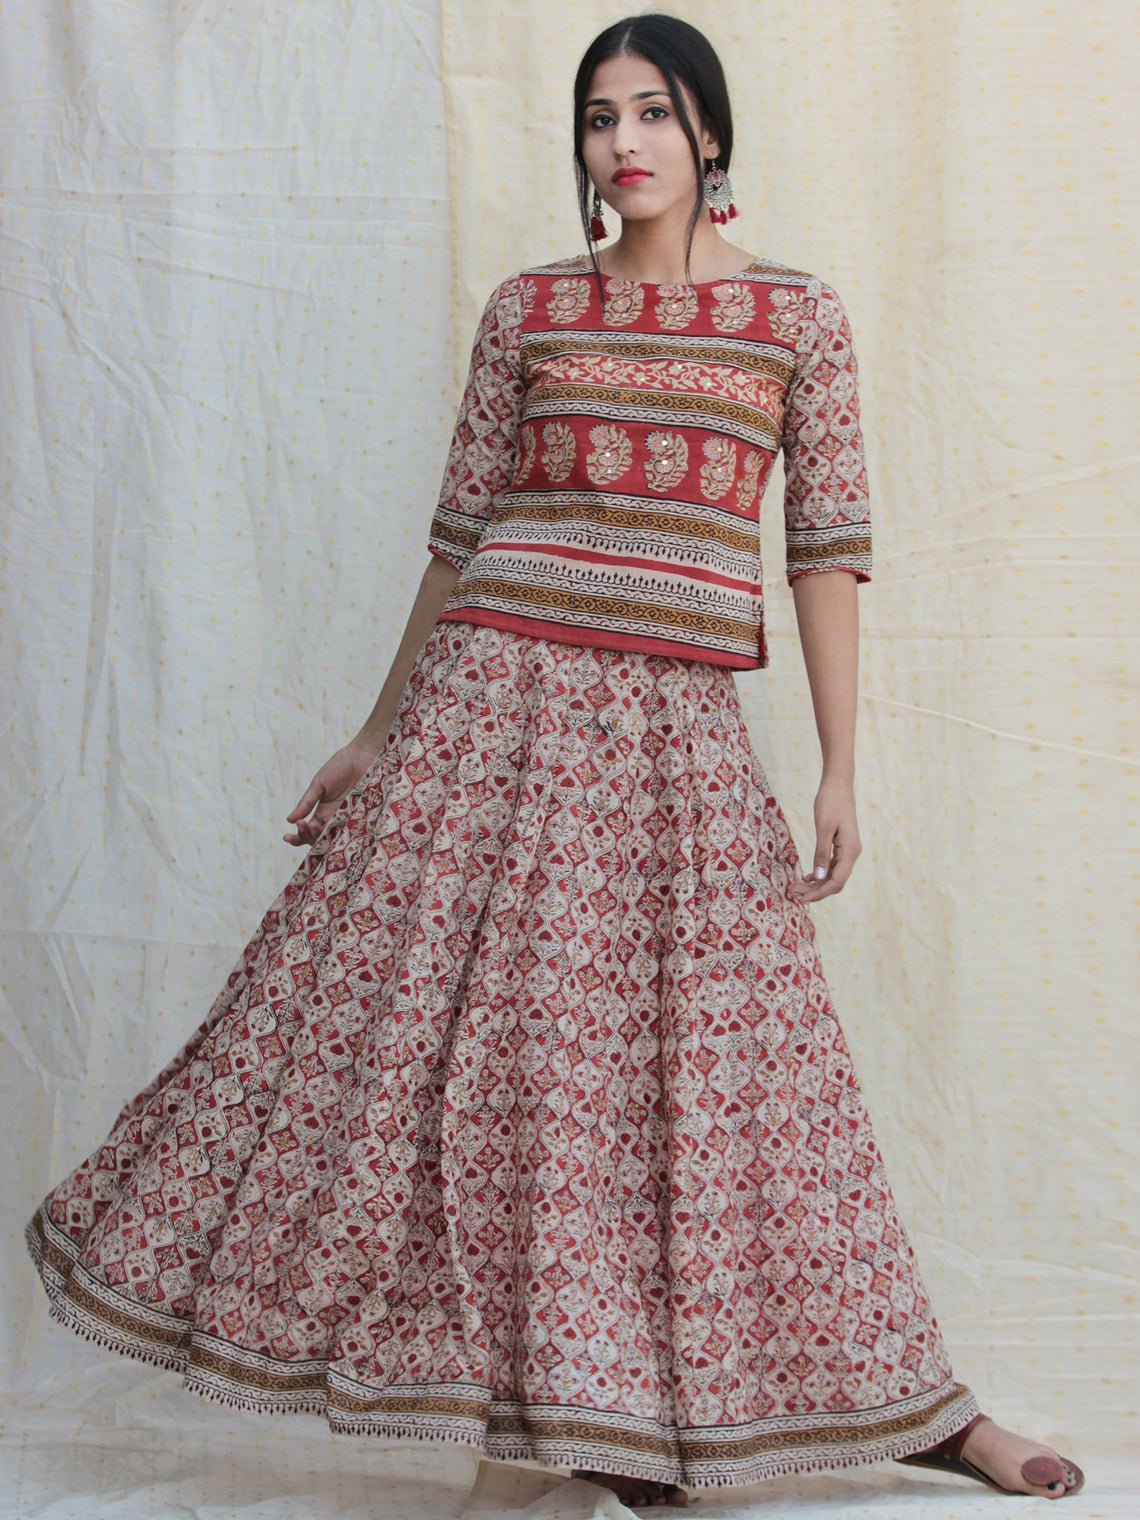 Naaz Rooh - Hand Block Printed Long Top And Skirt Dress - DS78F001